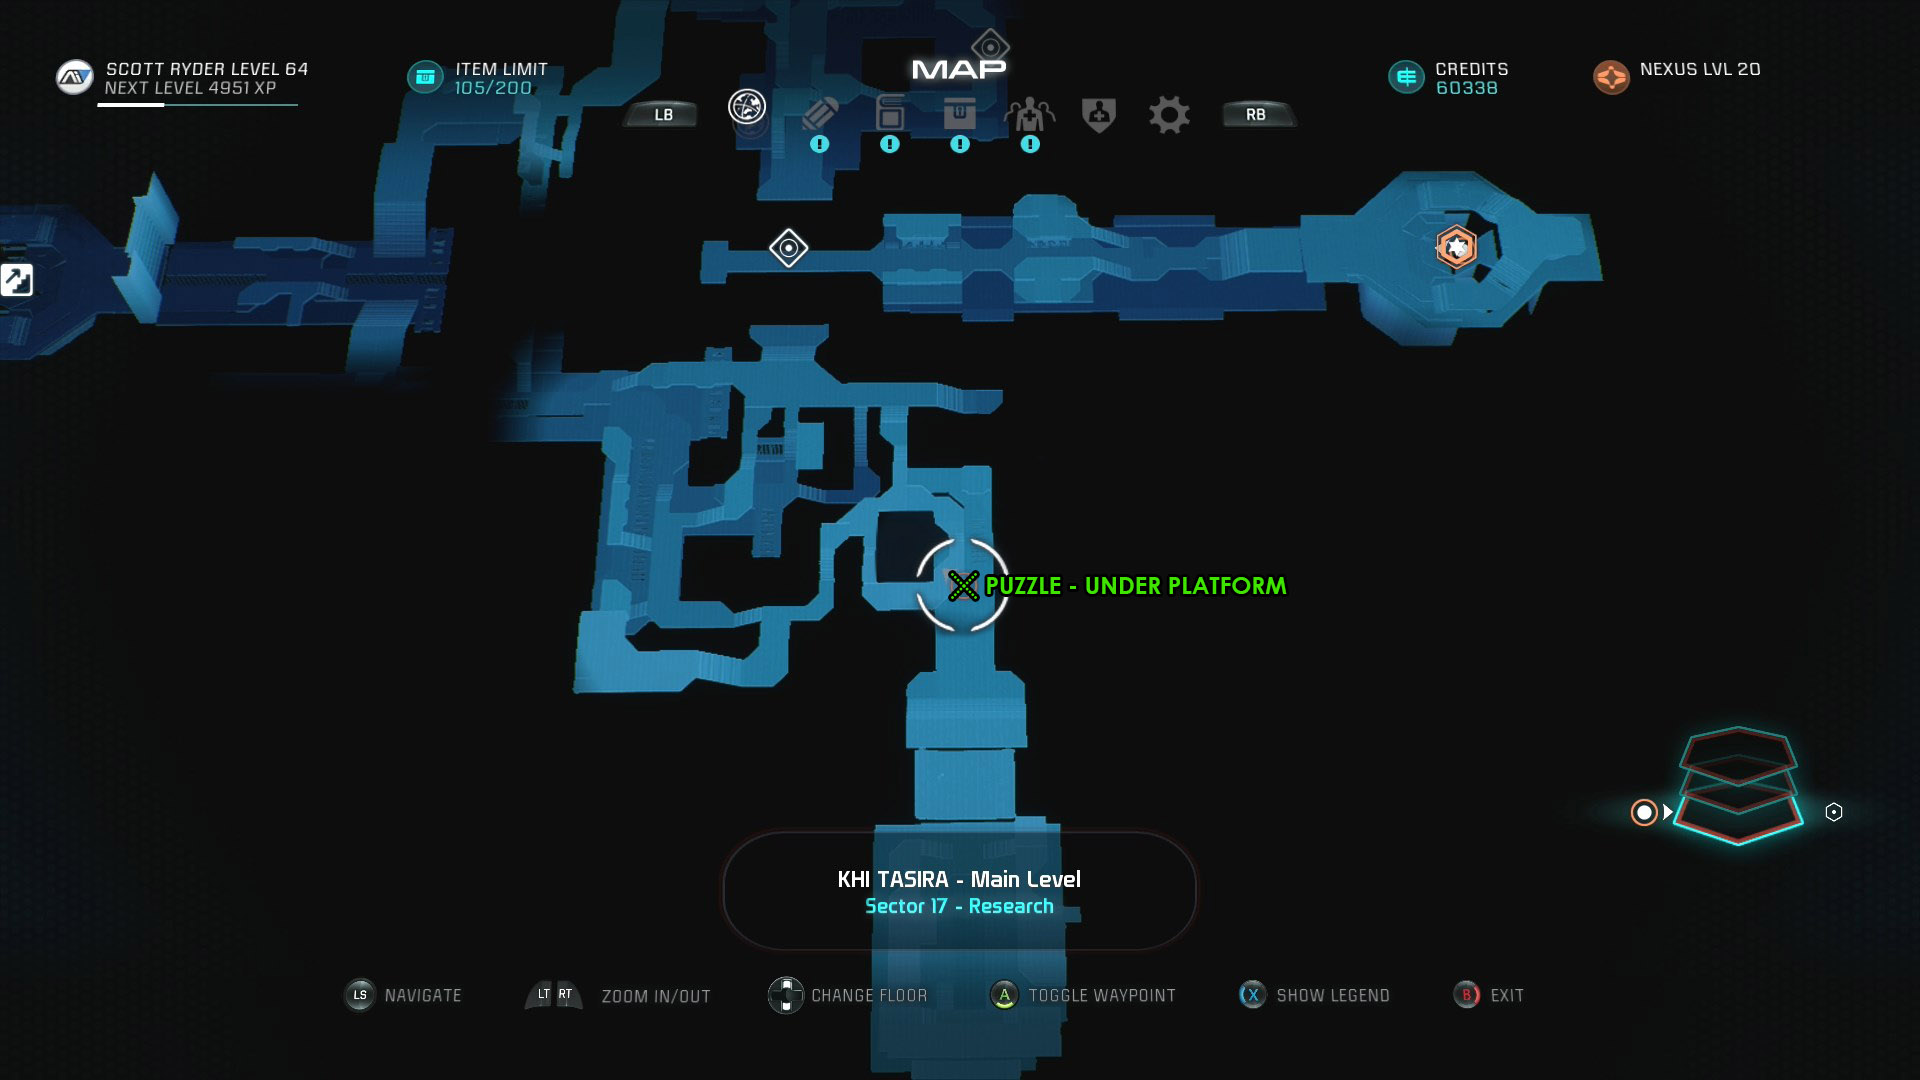 Mass Effect Andromeda Remnant Decryption Puzzle Location - Khi Tasira - The Journey to Meridian